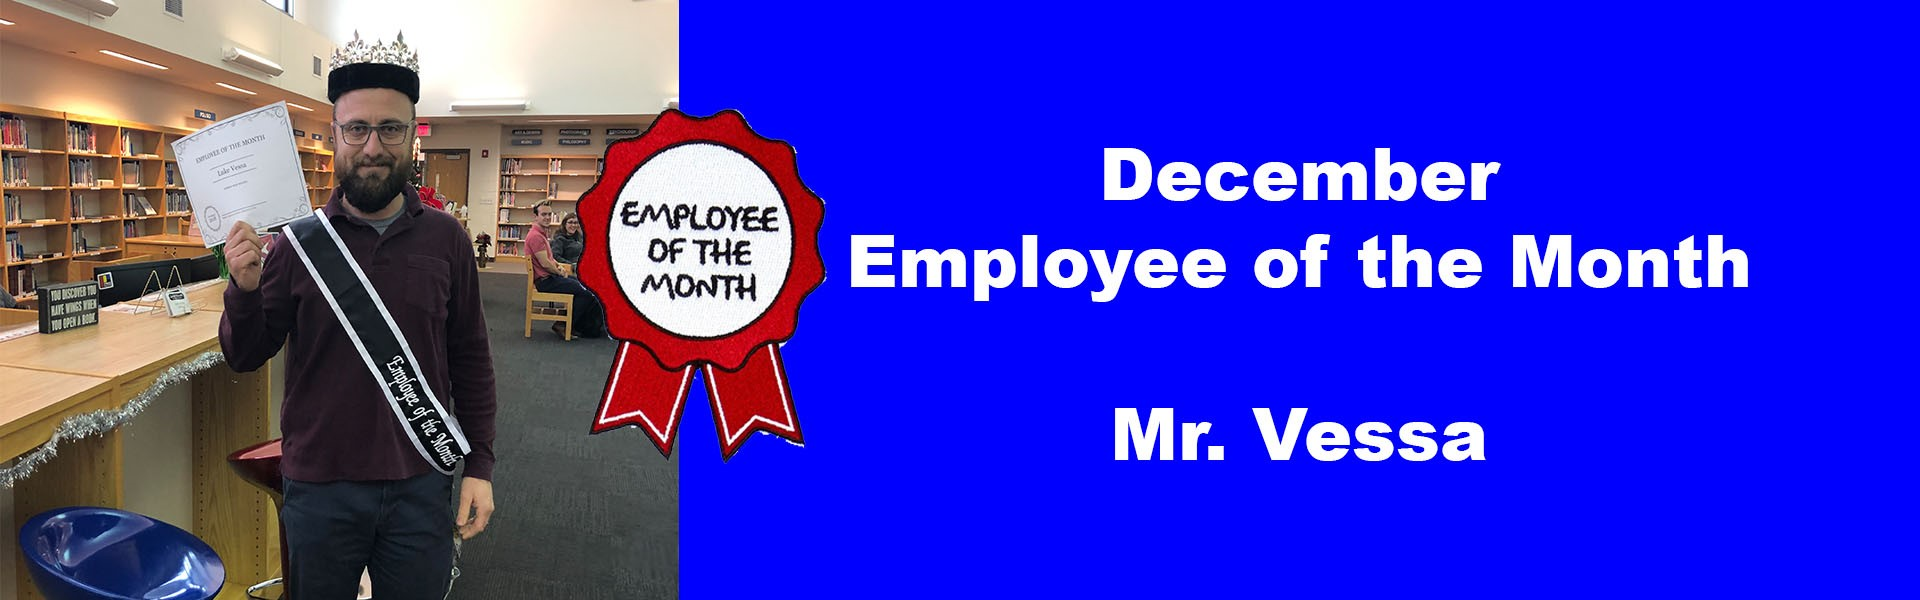 December Employee of the Month